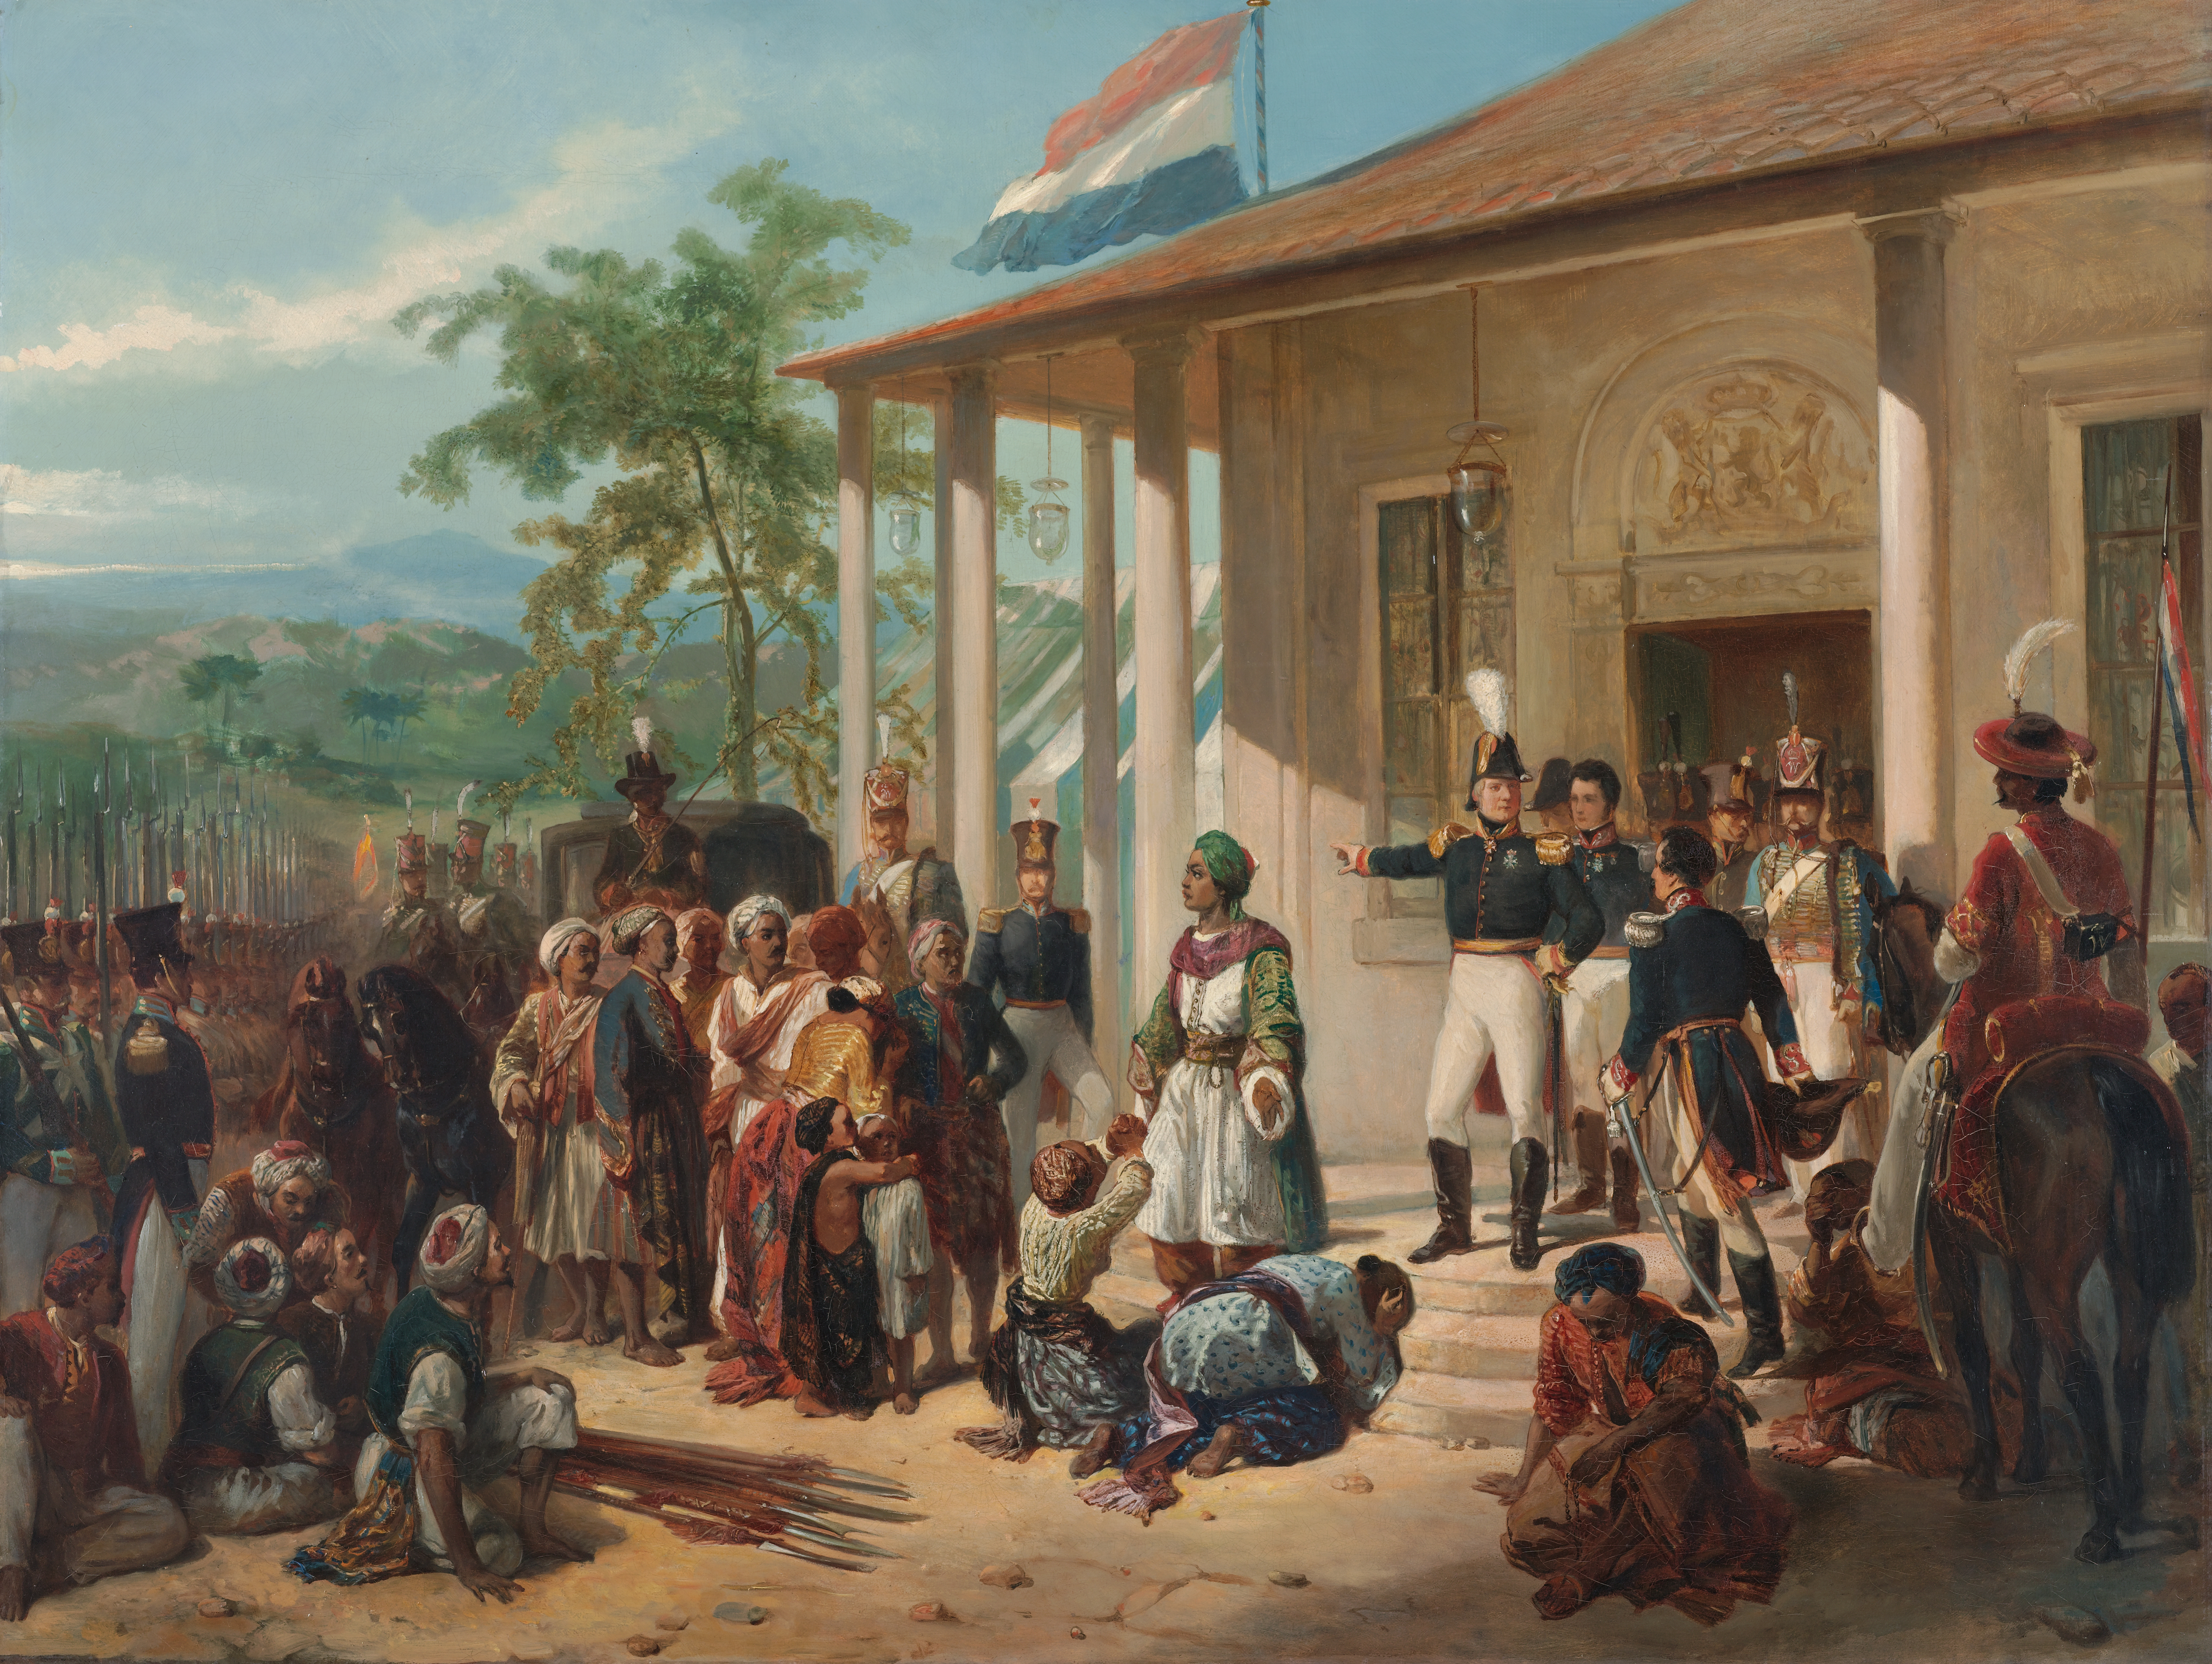 The submission of Prince Diponegoro to General De Kock at the end of the Java War in 1830 painting by Nicolaas Pieneman